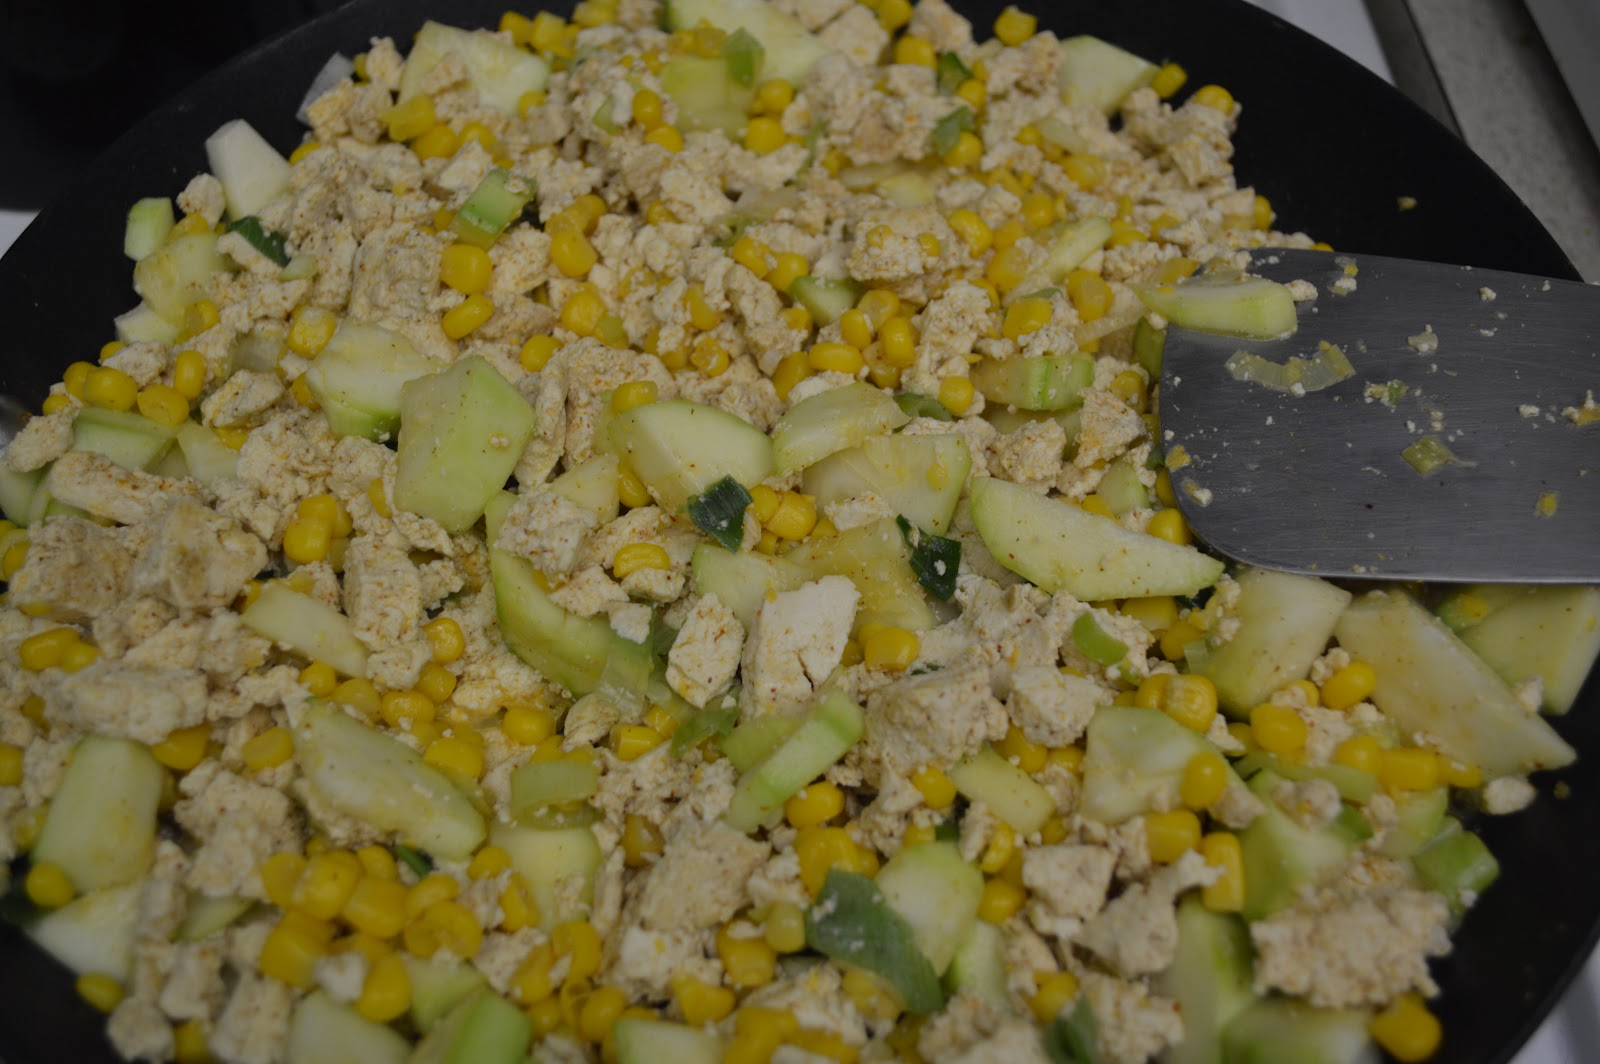 Day #3: Southwestern Tofu Scramble - The Samantha Show